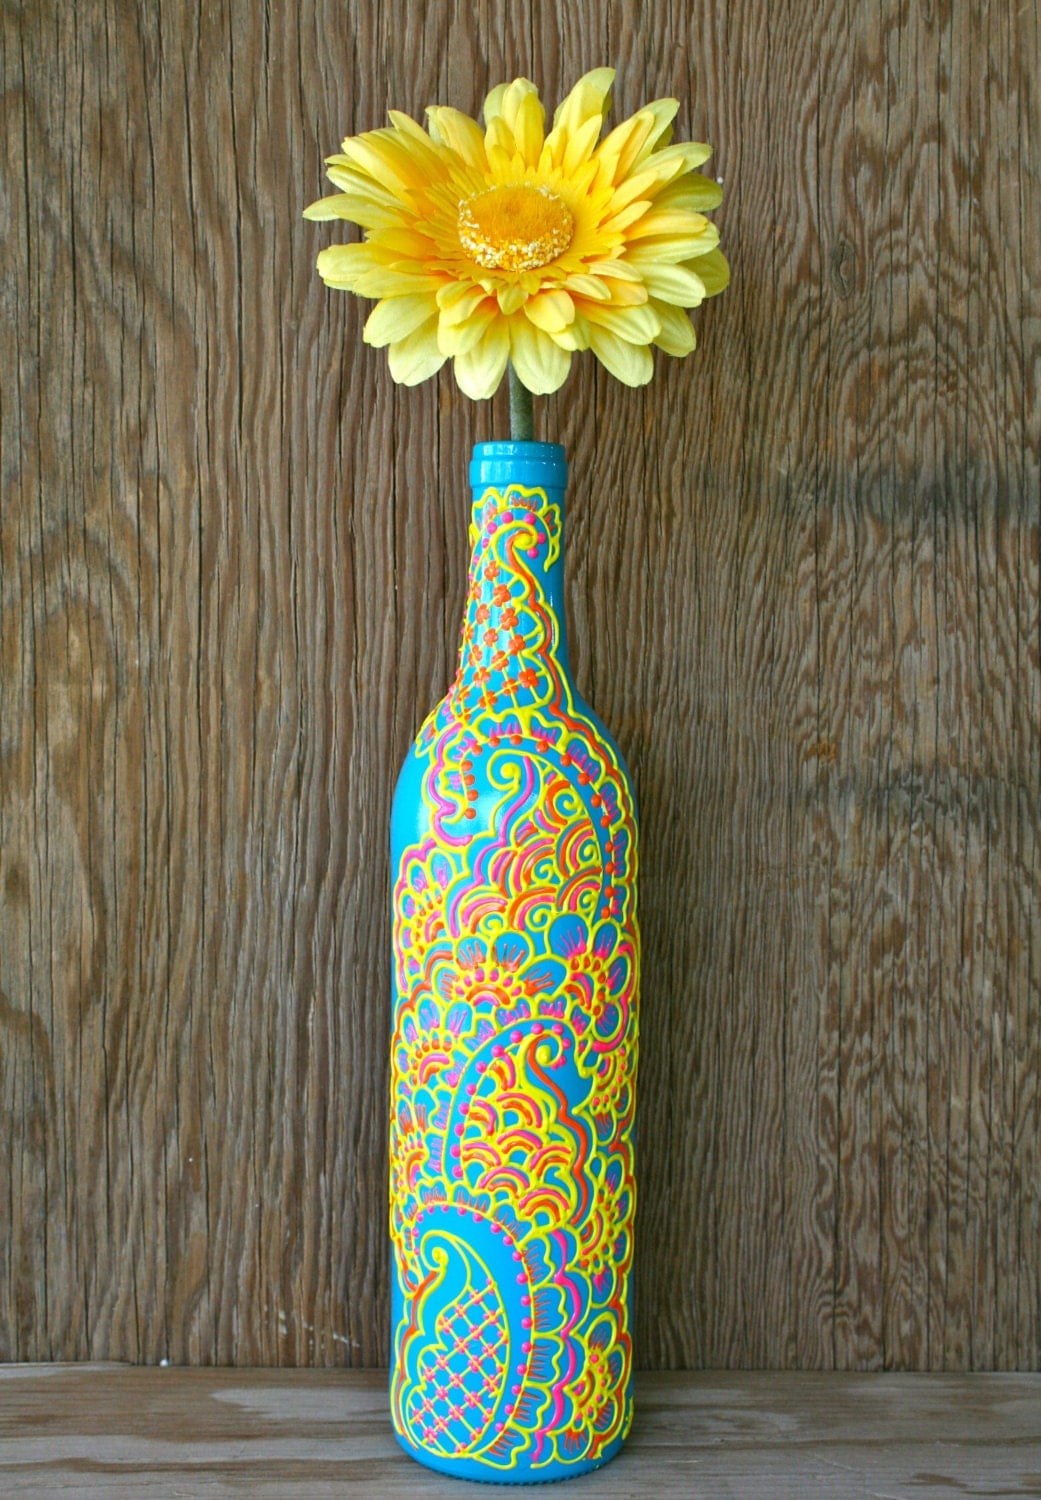 Hand Painted Wine Bottle Vase Turquoise Bottle With Sunshine: painting old glass bottles